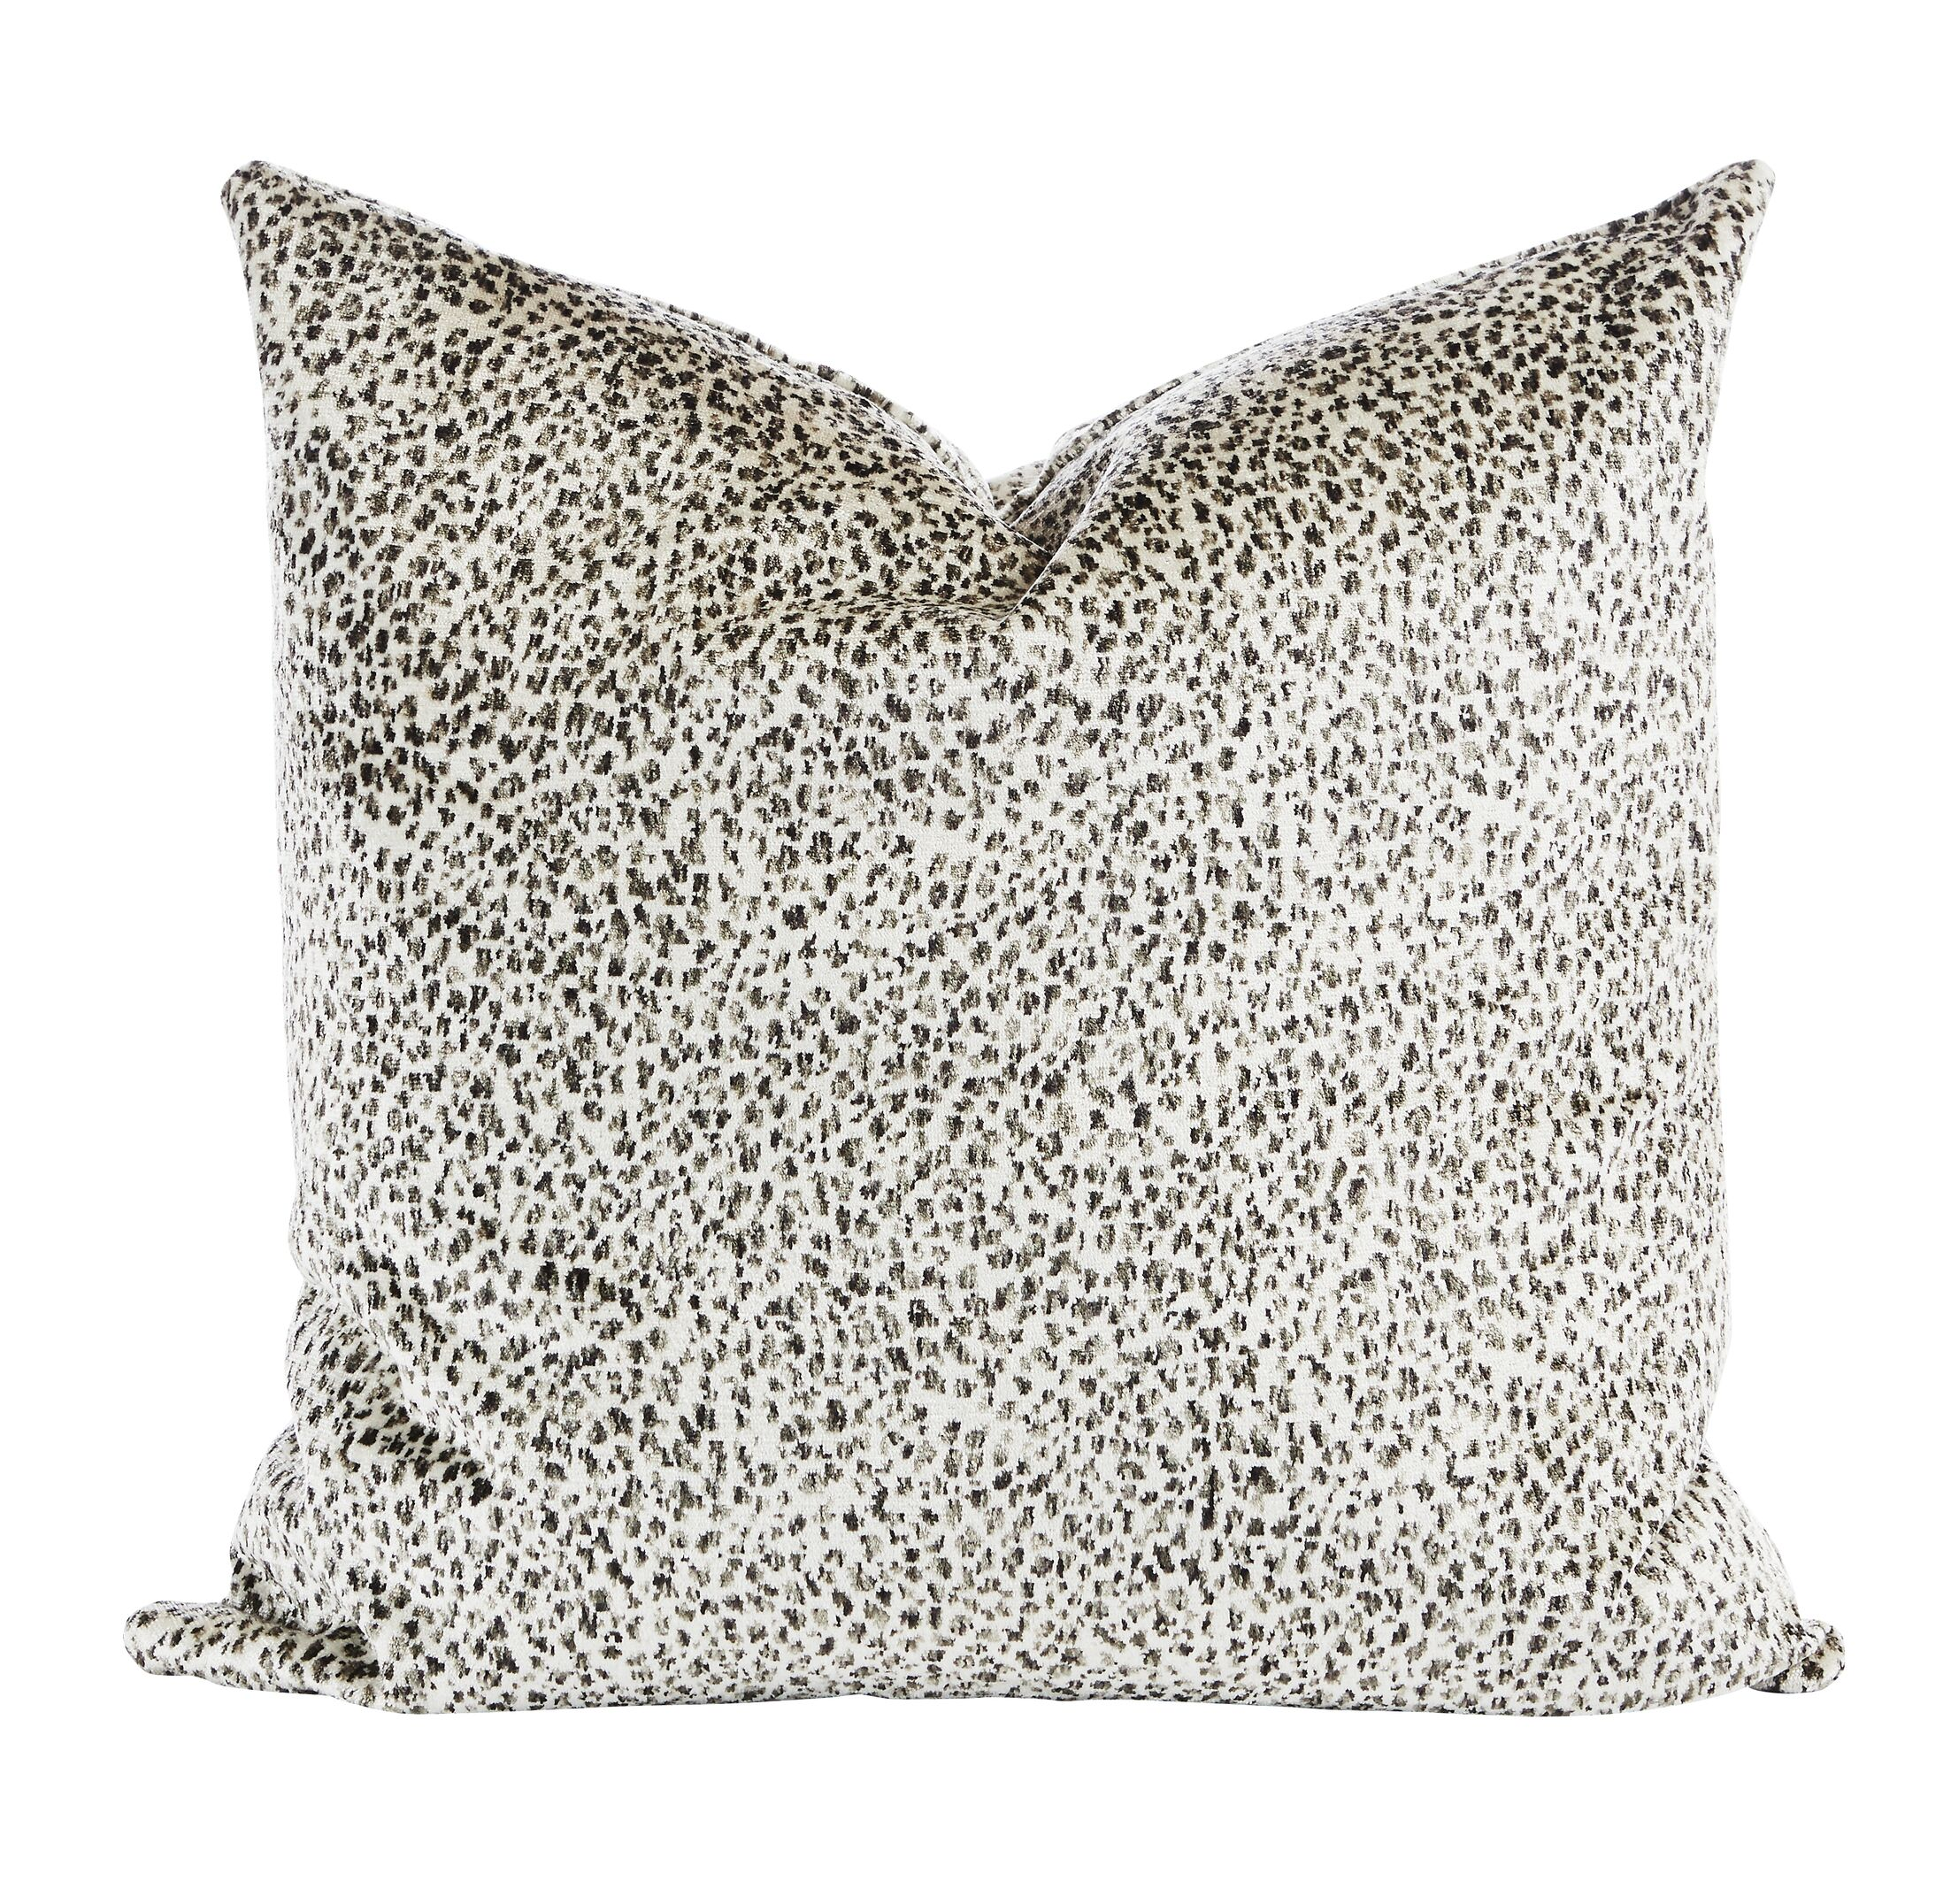 Smoky Velvet Throw Pillow (Set of 2)